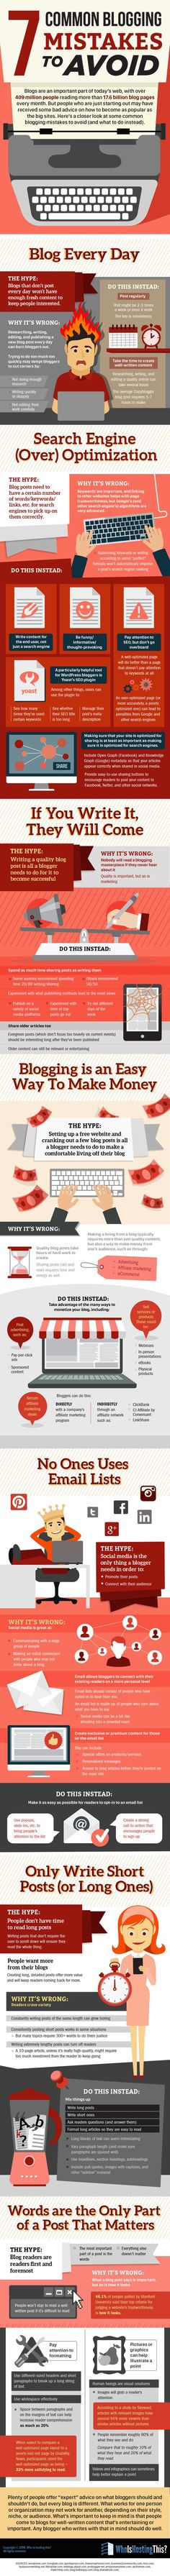 7 Common Blogging Mistakes To Avoid [Infographic] | Social Media Today